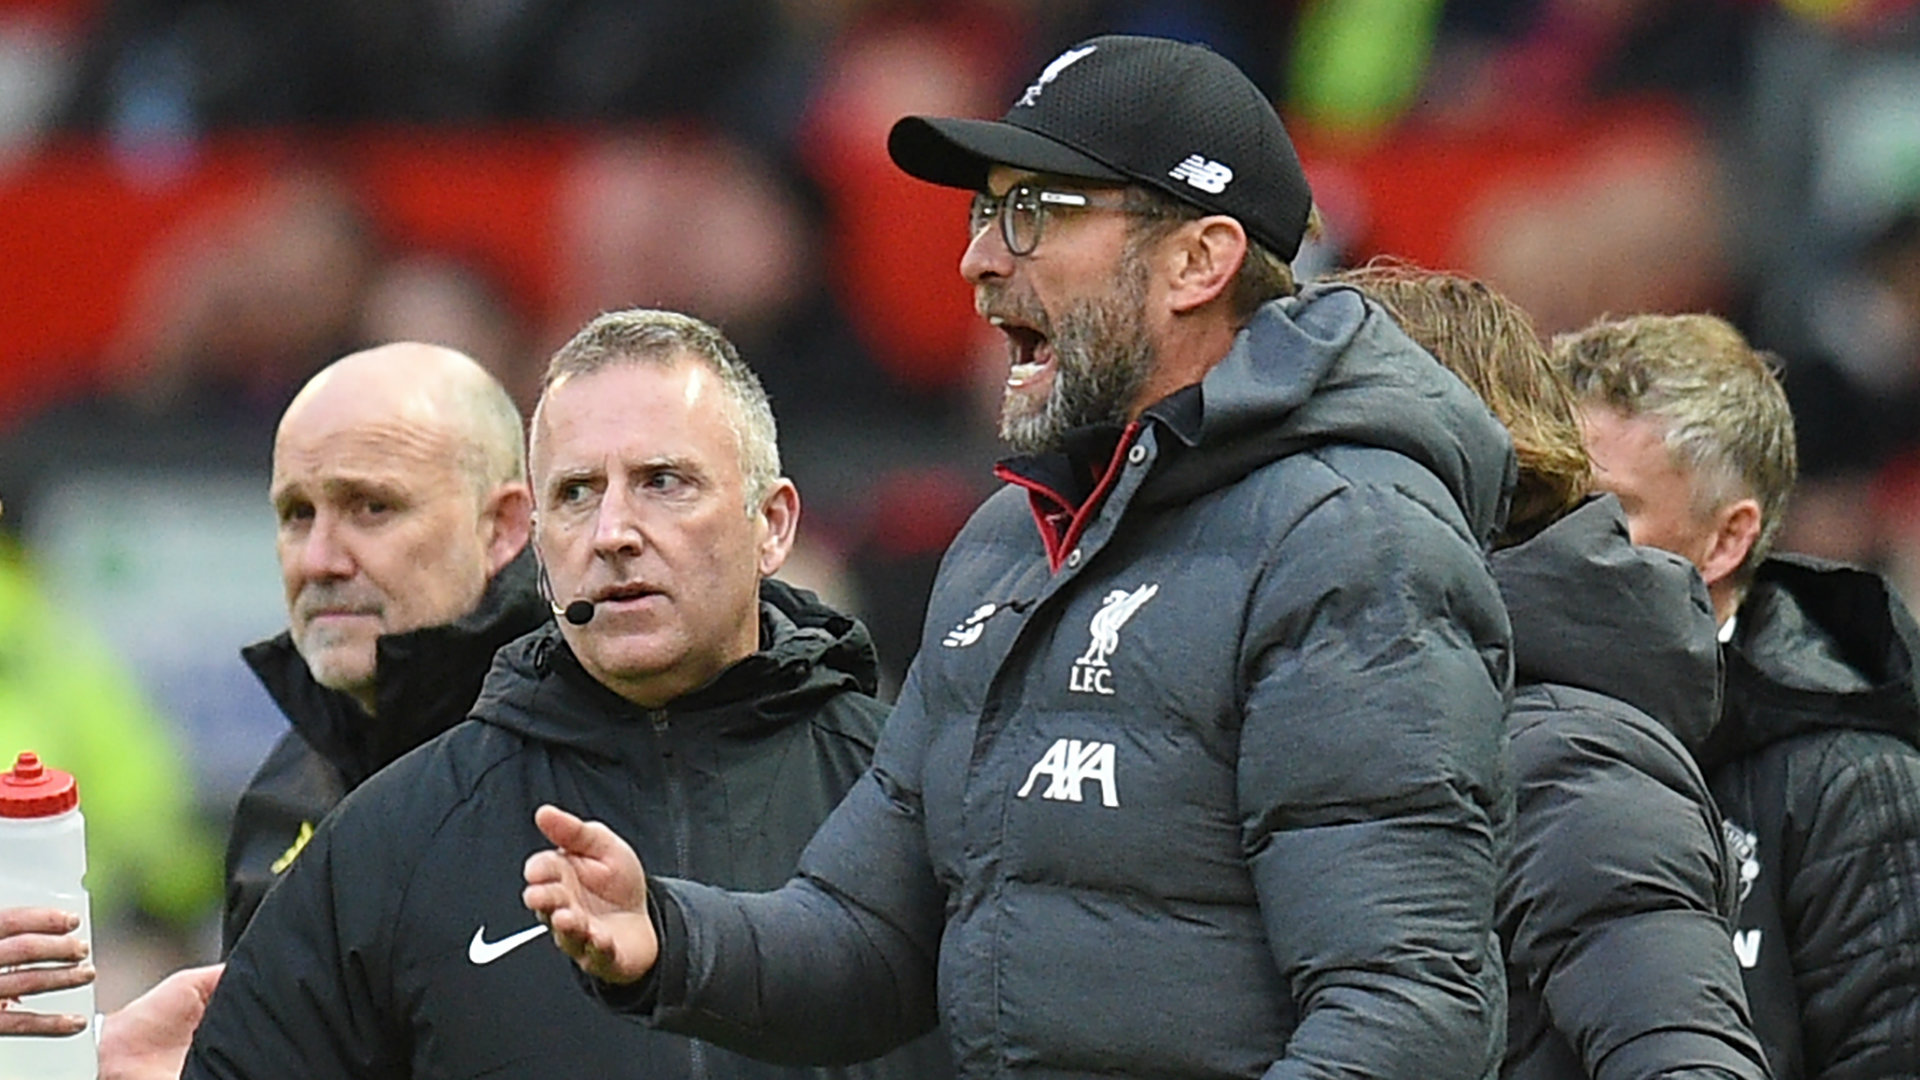 Jurgen Klopp Man Utd vs Liverpool 2019-20